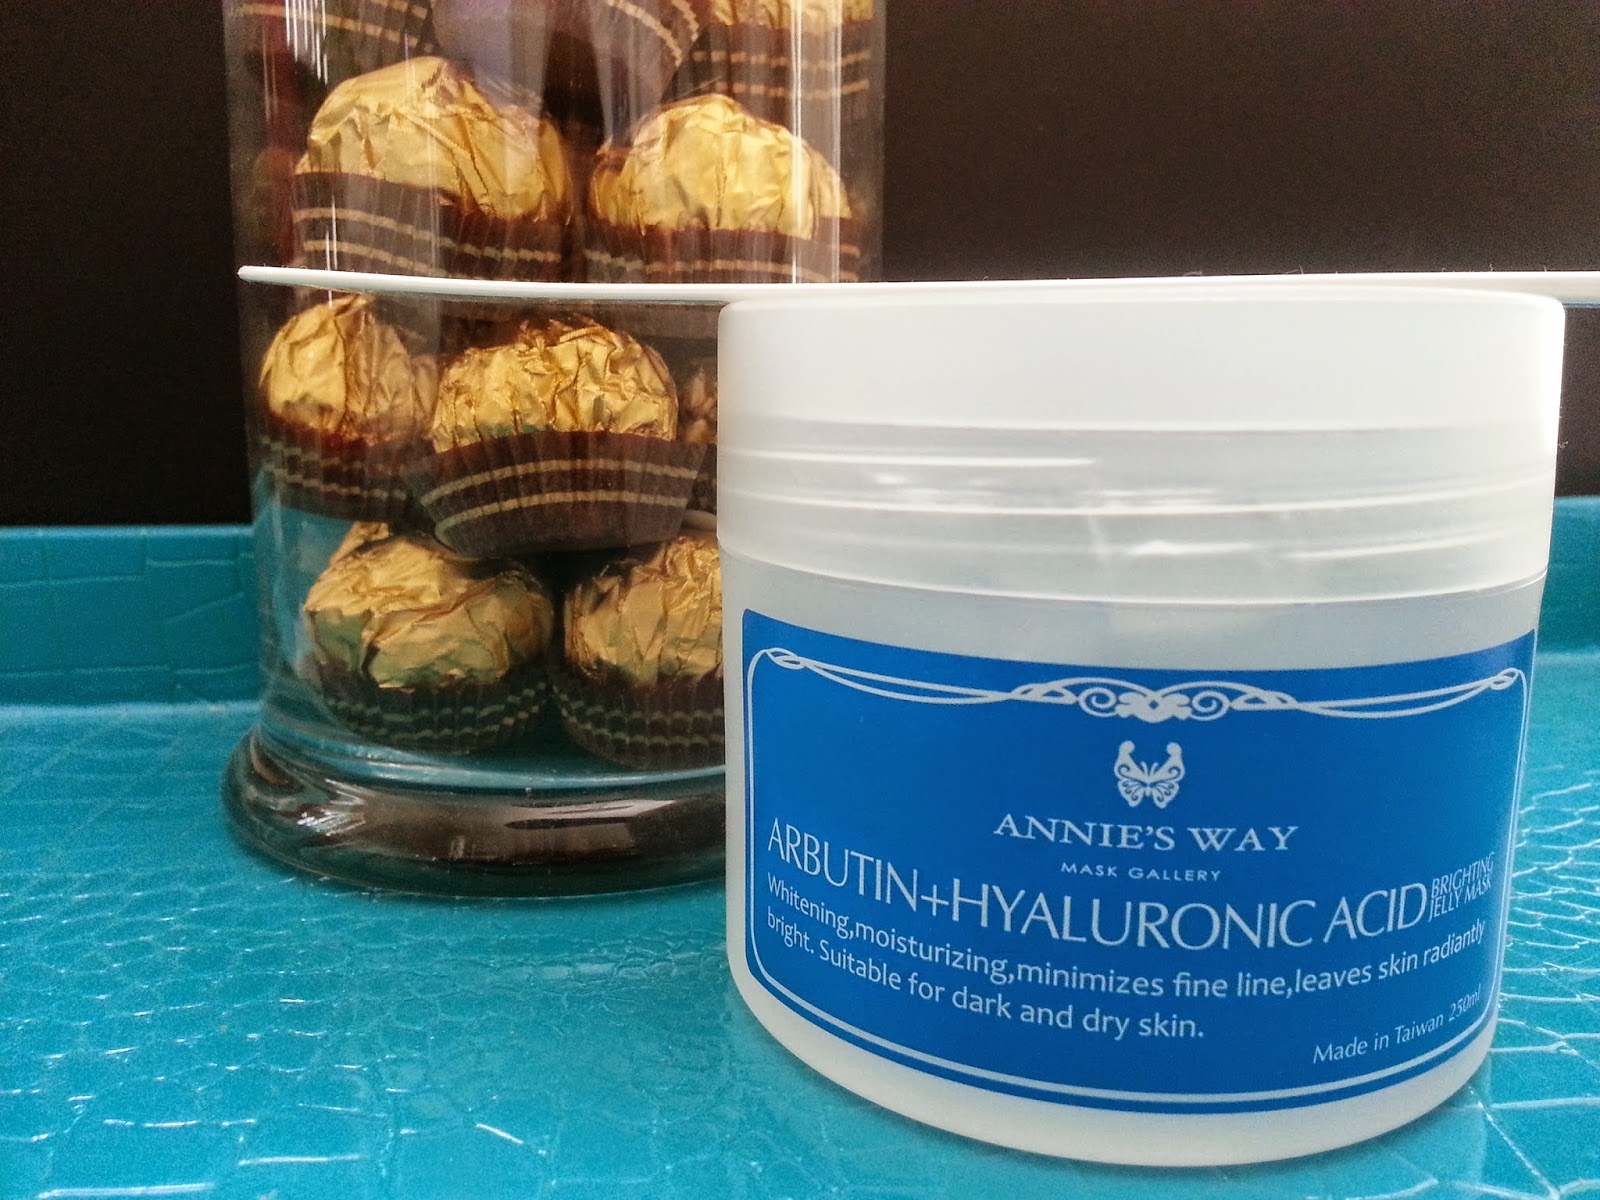 Annie's Way Arbutin + Hyaluronic Acid Brightening Jelly Mask